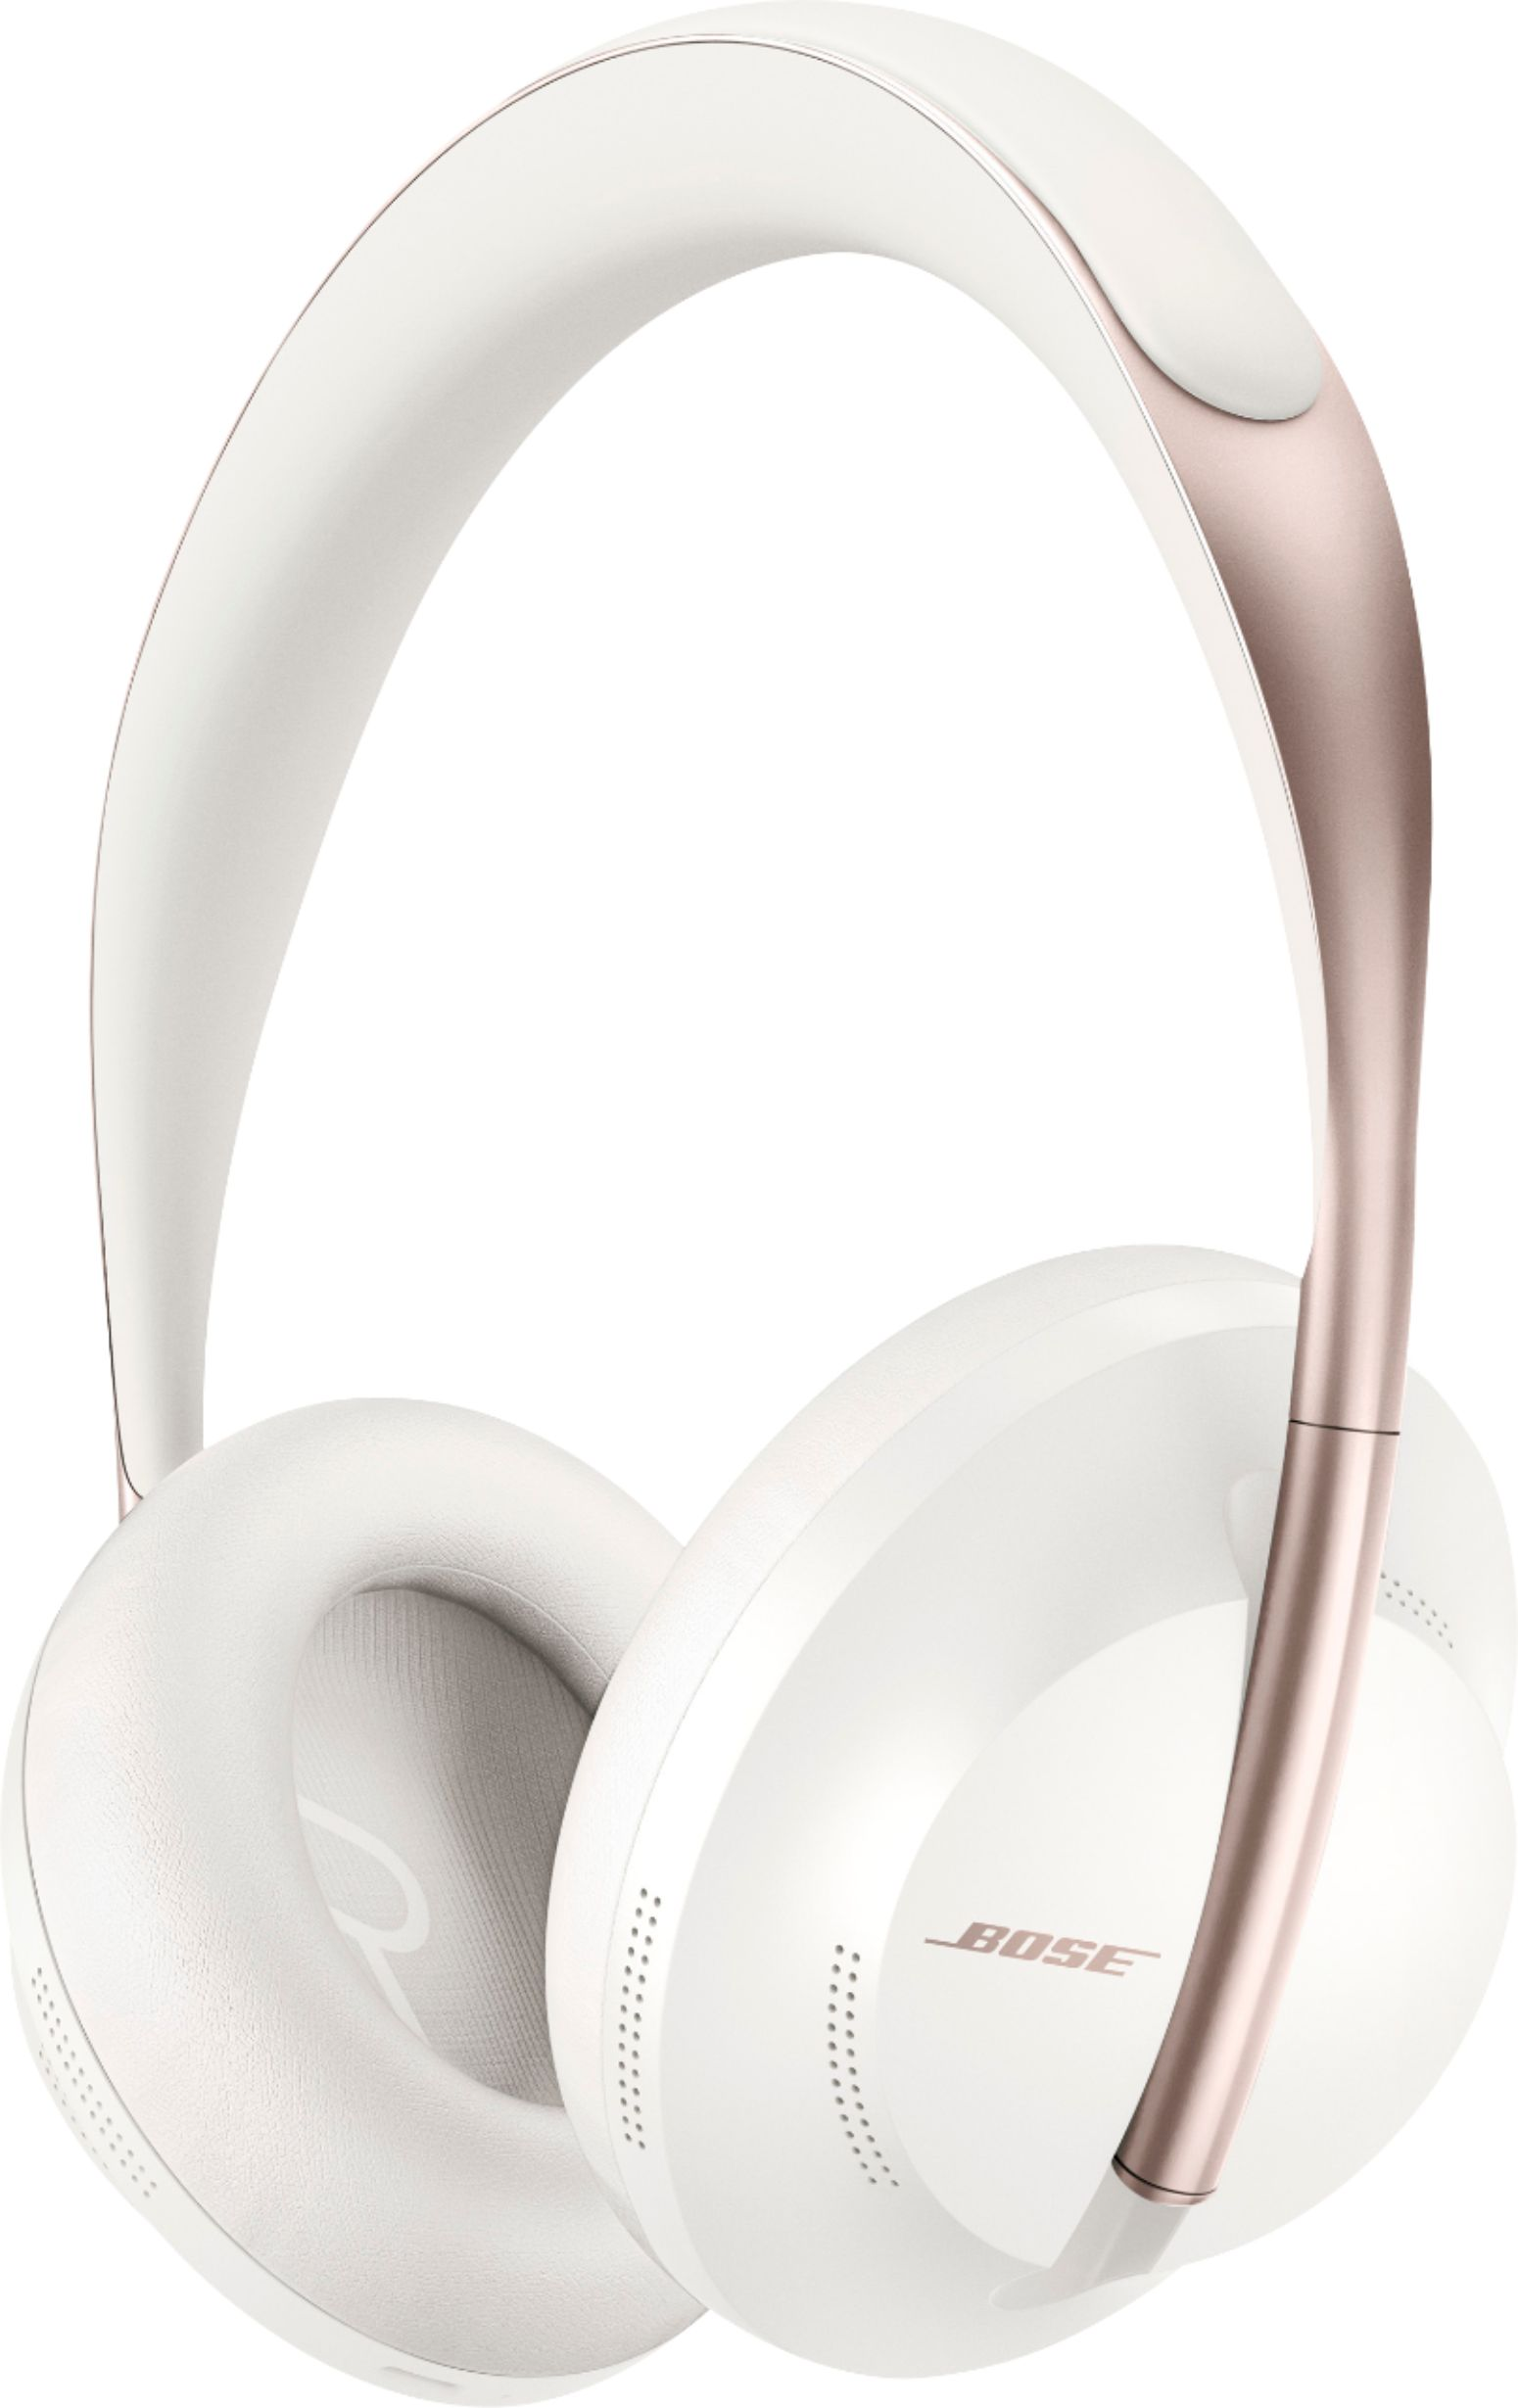 Bose 700 Noise-Cancelling Headphones - Best Cyber Monday Tech Deals